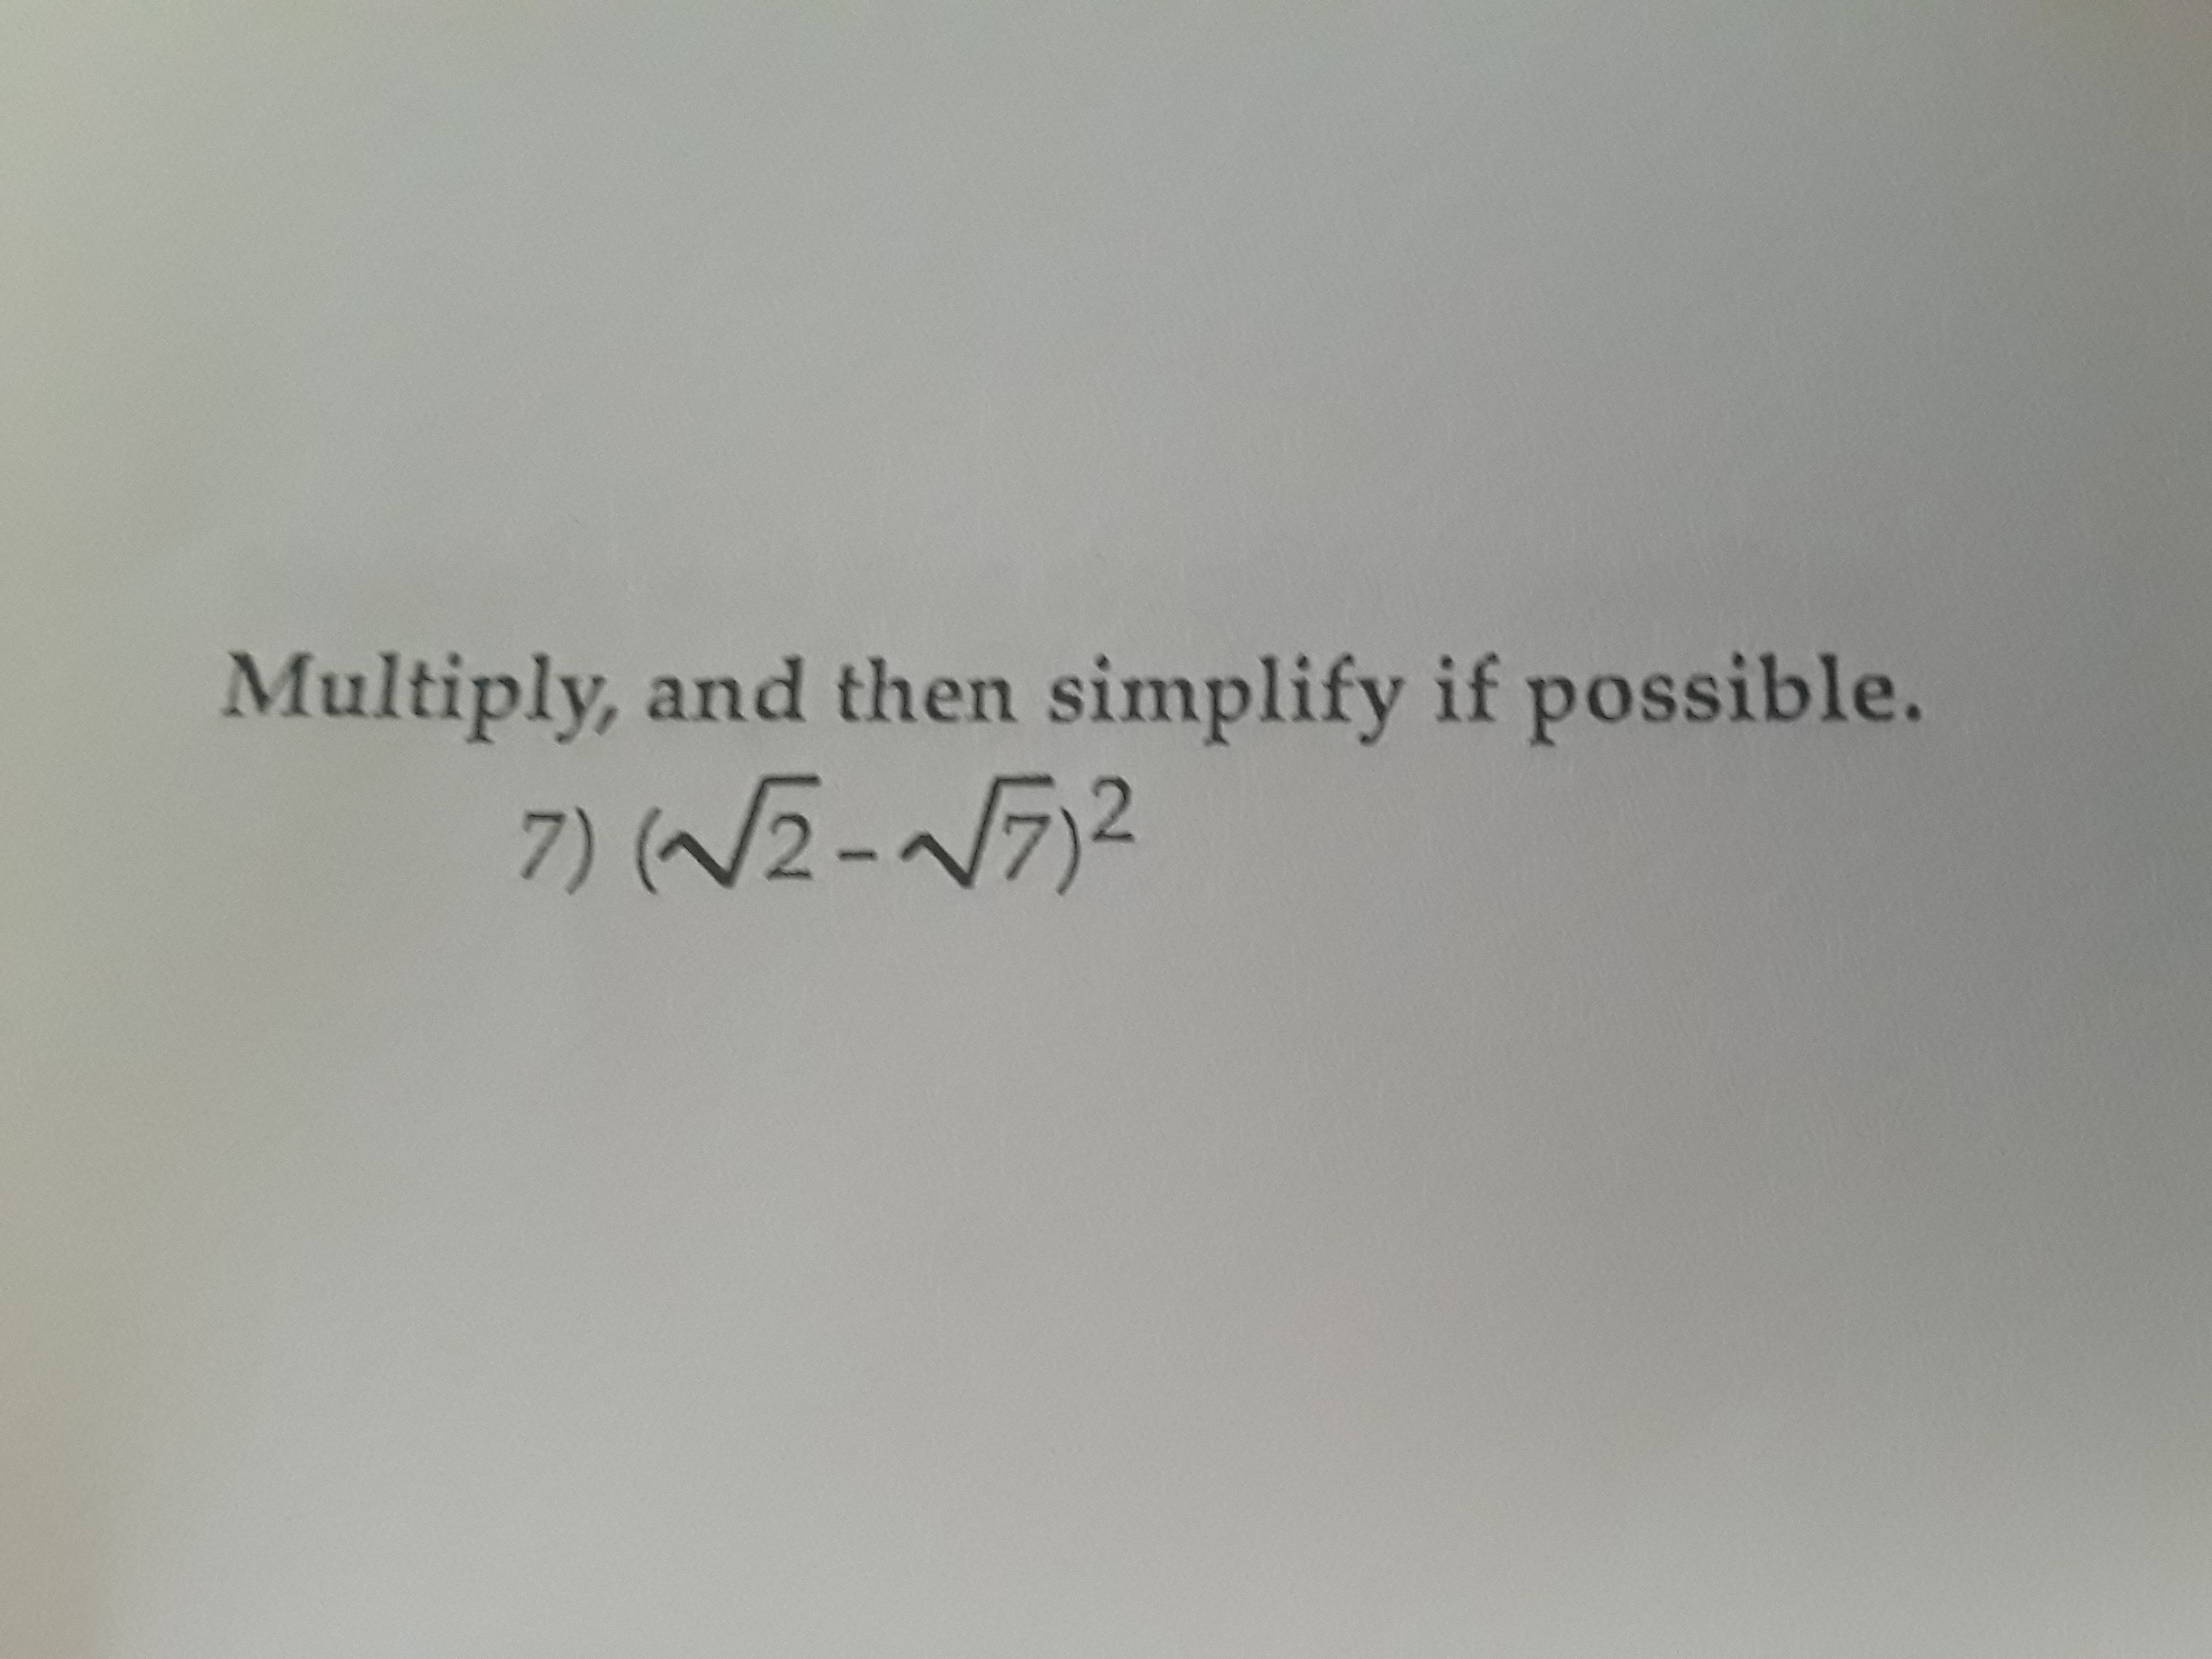 Multiply, and then simplify if possible. 7) (W2-N72